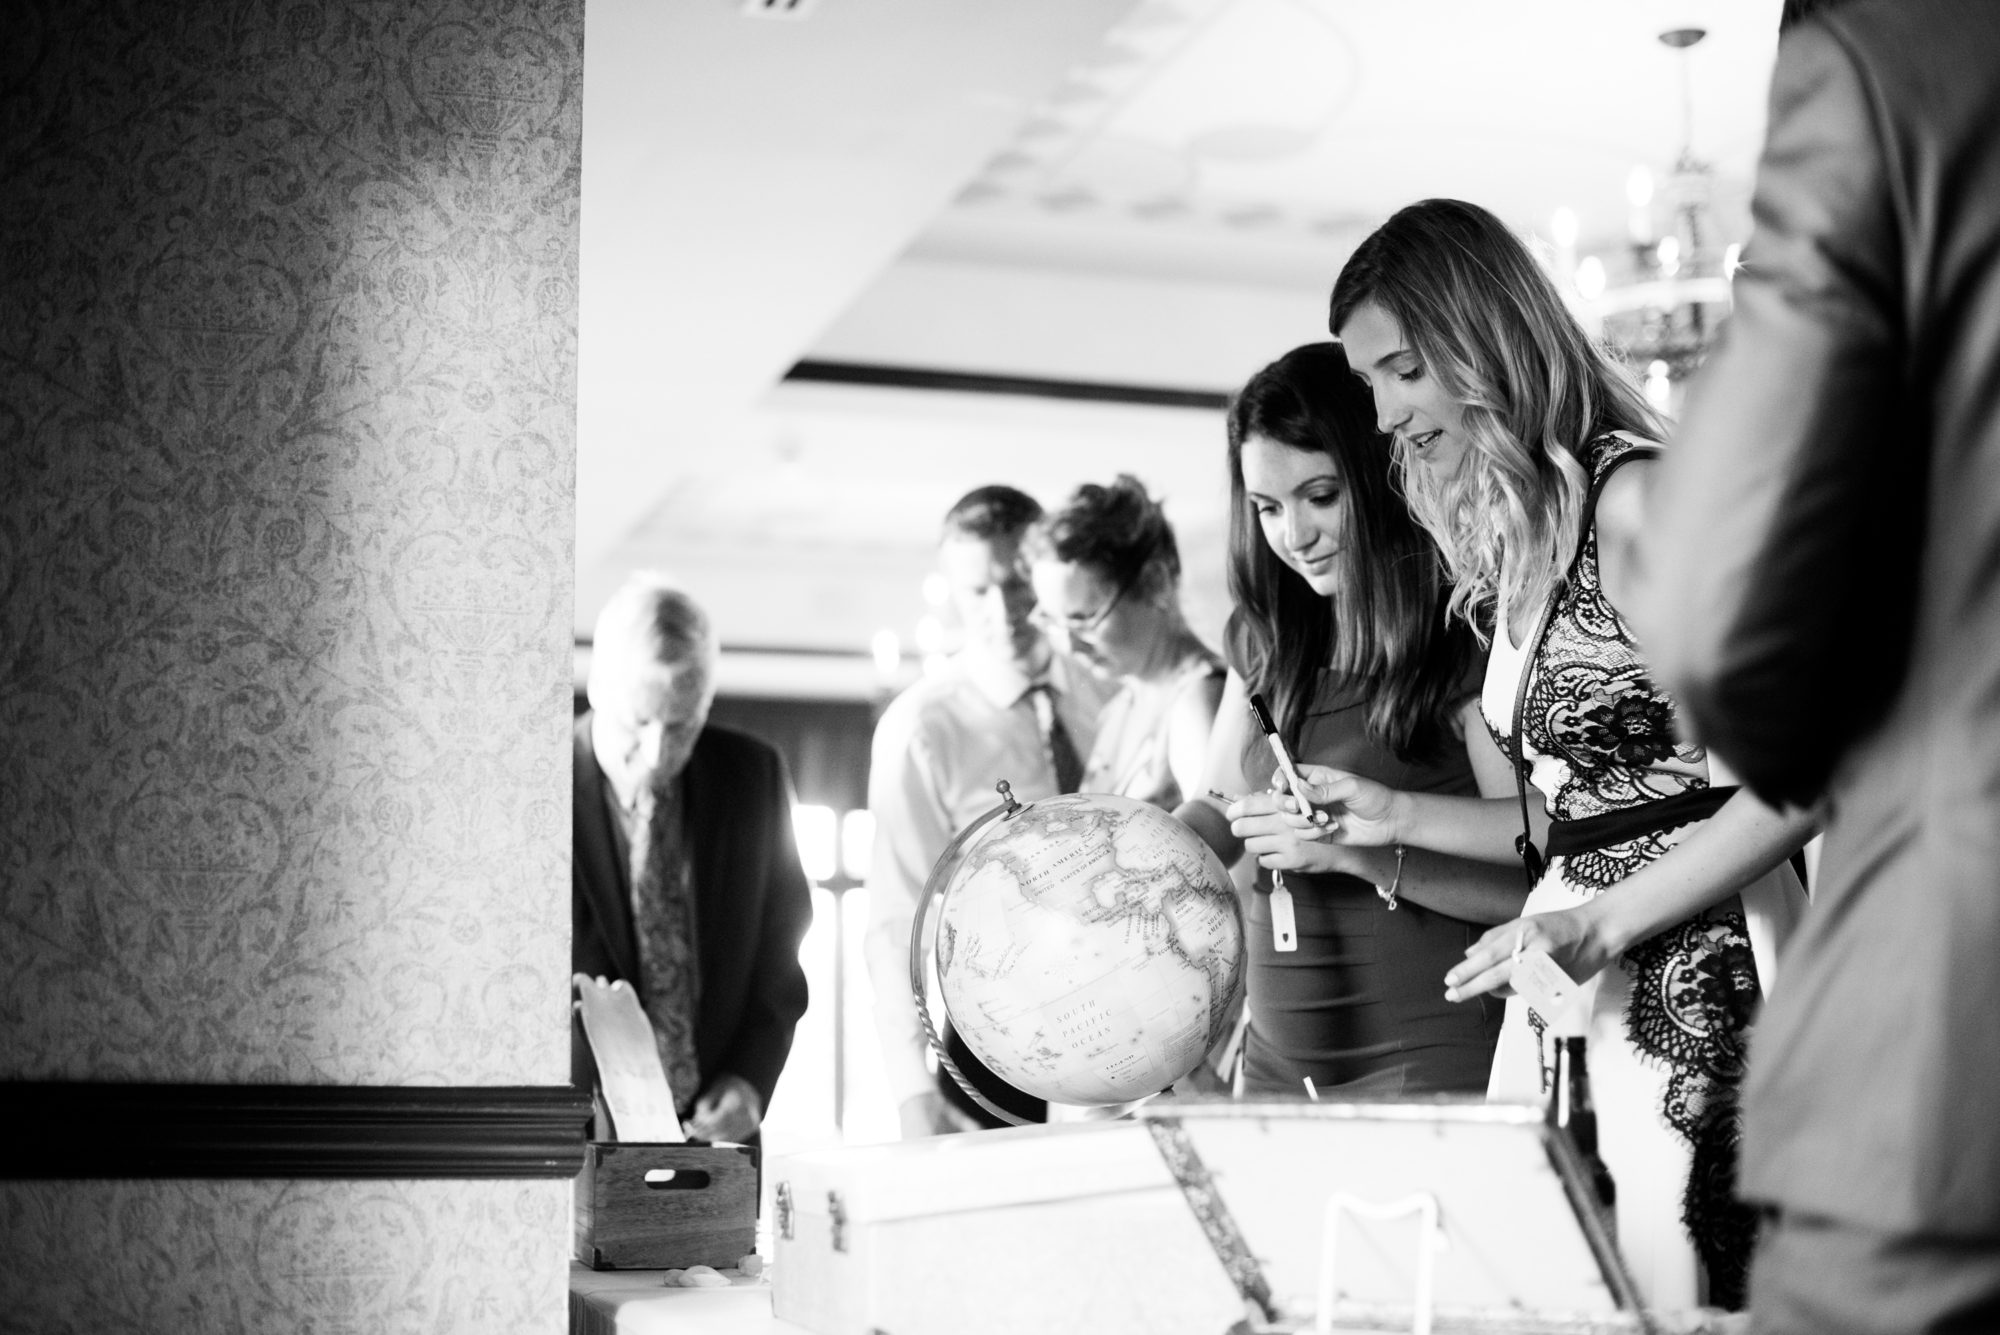 Guests Candid Globe Wedding King City Zsuzsi Pal Photography